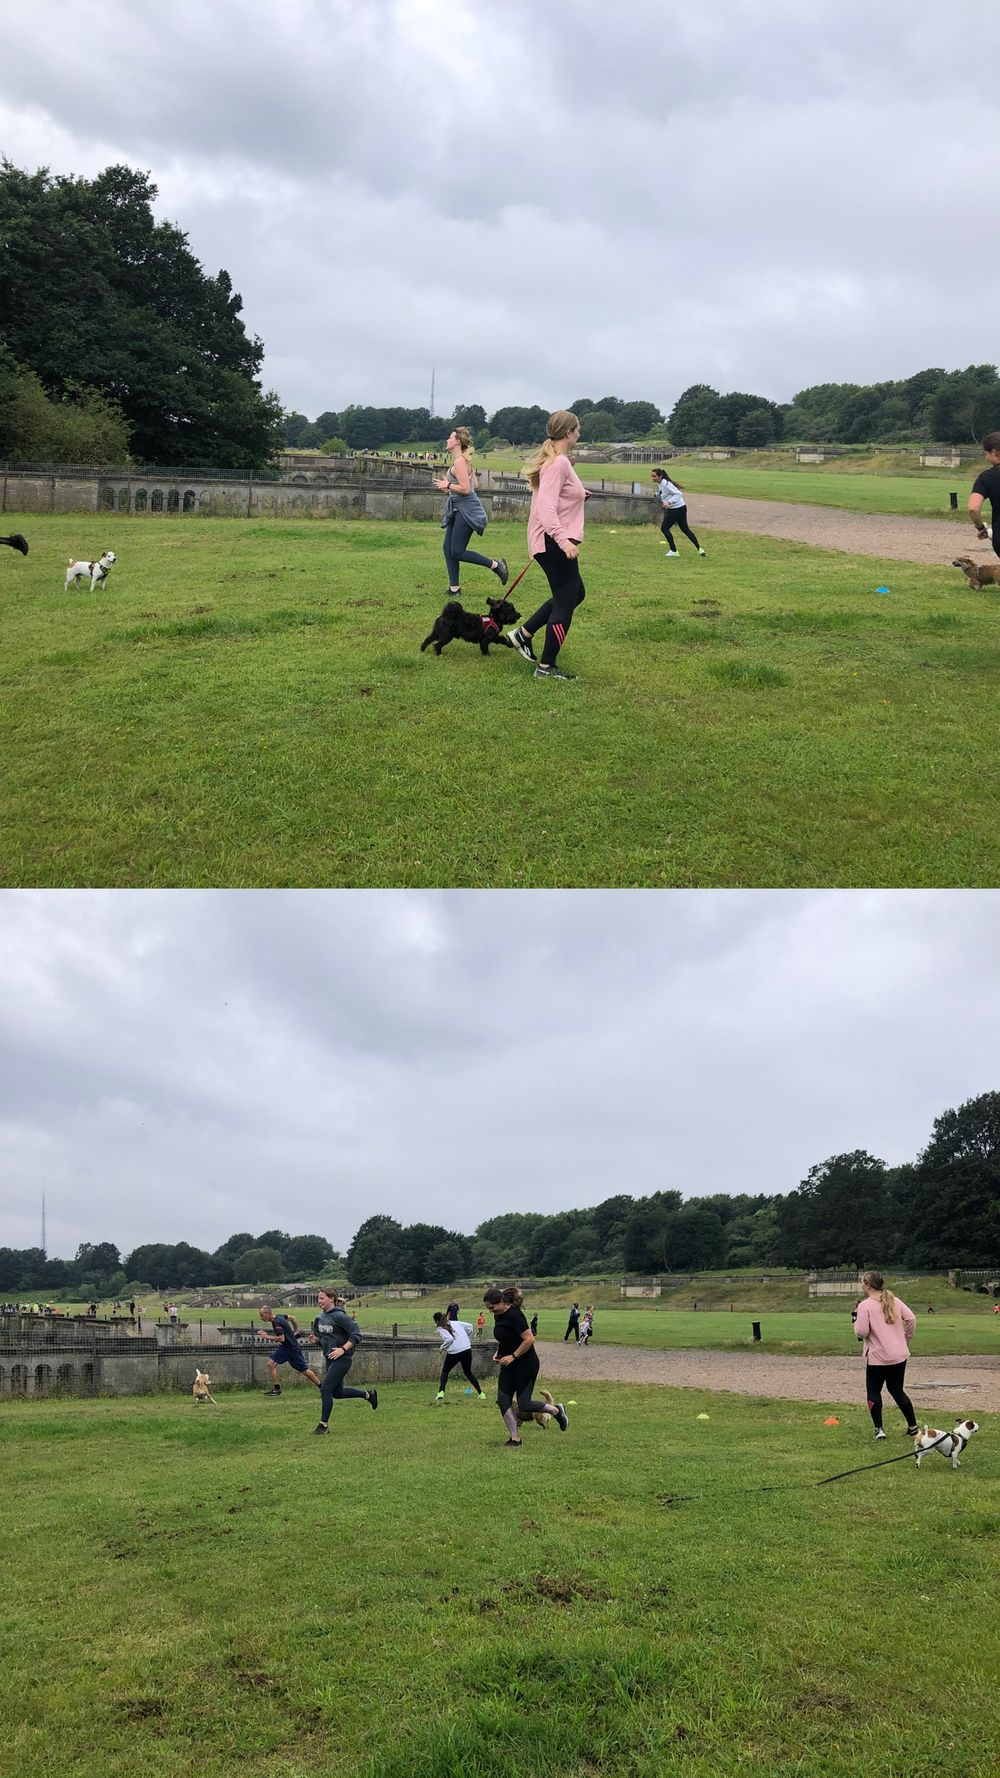 We had so much fun at Woof Camp today in Crystal Palace 🐶🐕 beautiful chaos! Hopefully I did a good job covering for [@SarahsAlternativeFitness](/u/SarahsAlternativeFitness) 😊